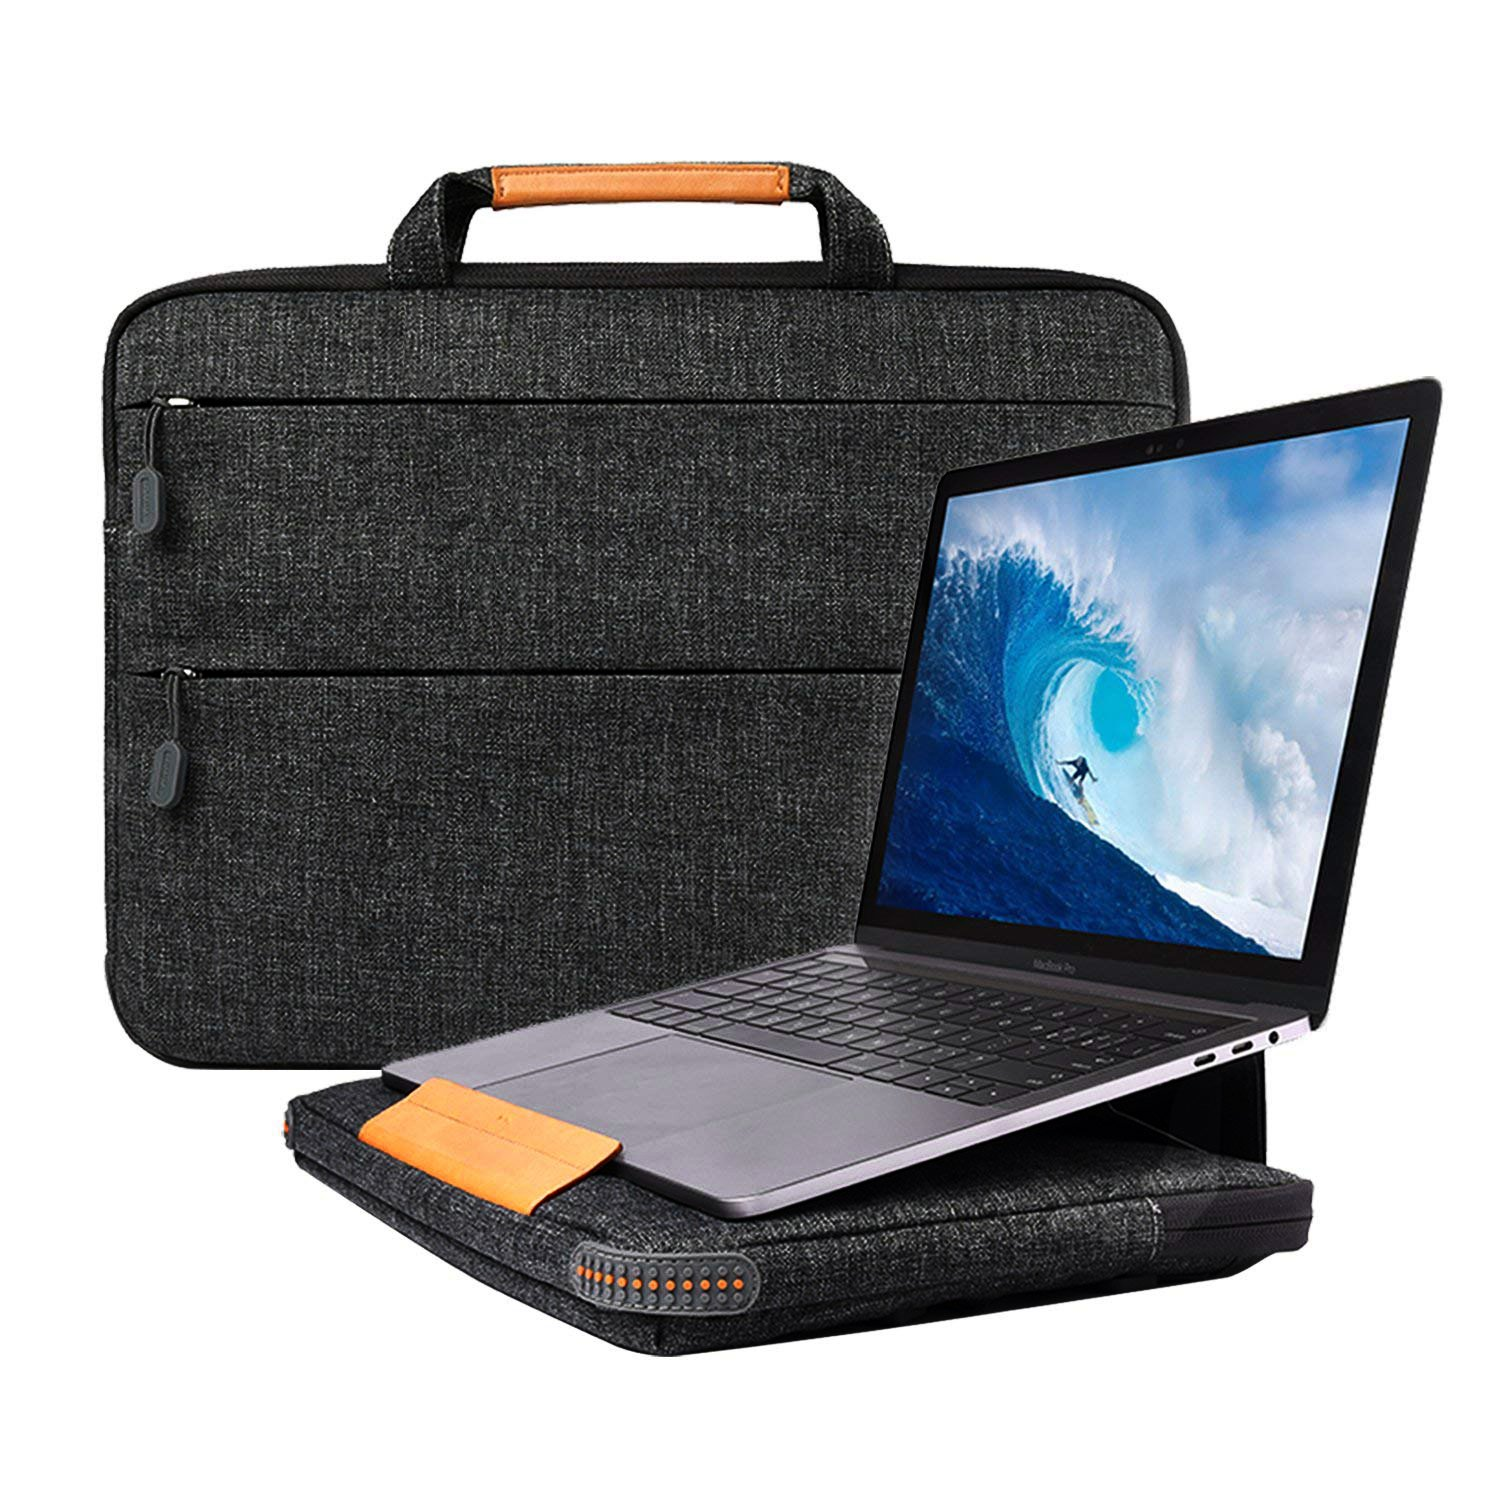 13-13.3 Inch Laptop Bag Sleeve Case Cover with Stand Function for Macbook Air / Macbook Pro / Pro Retina , EKOOS Protective Bag Carrying Case Briefcases for Surface Laptop 2017 Samsung Acer HP,12.9 Inch iPad Pro 2018 2017 - Black Wiwu